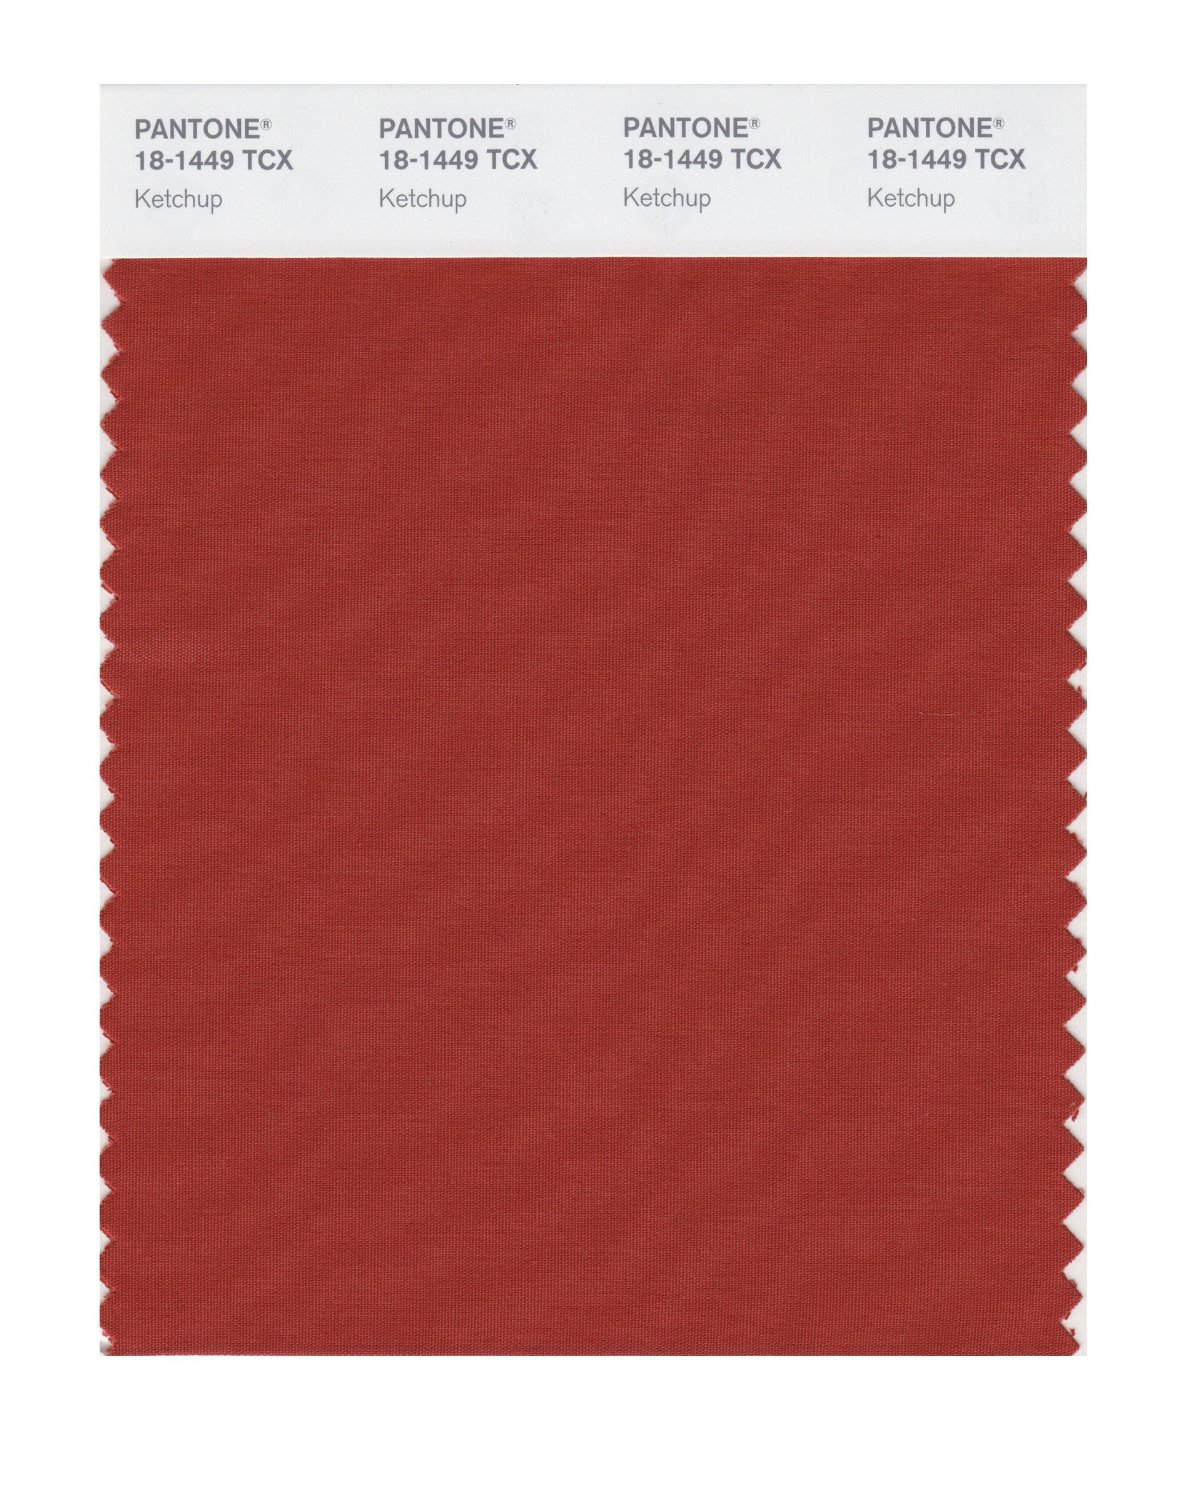 Pantone Smart Swatch 18-1449 Ketchup